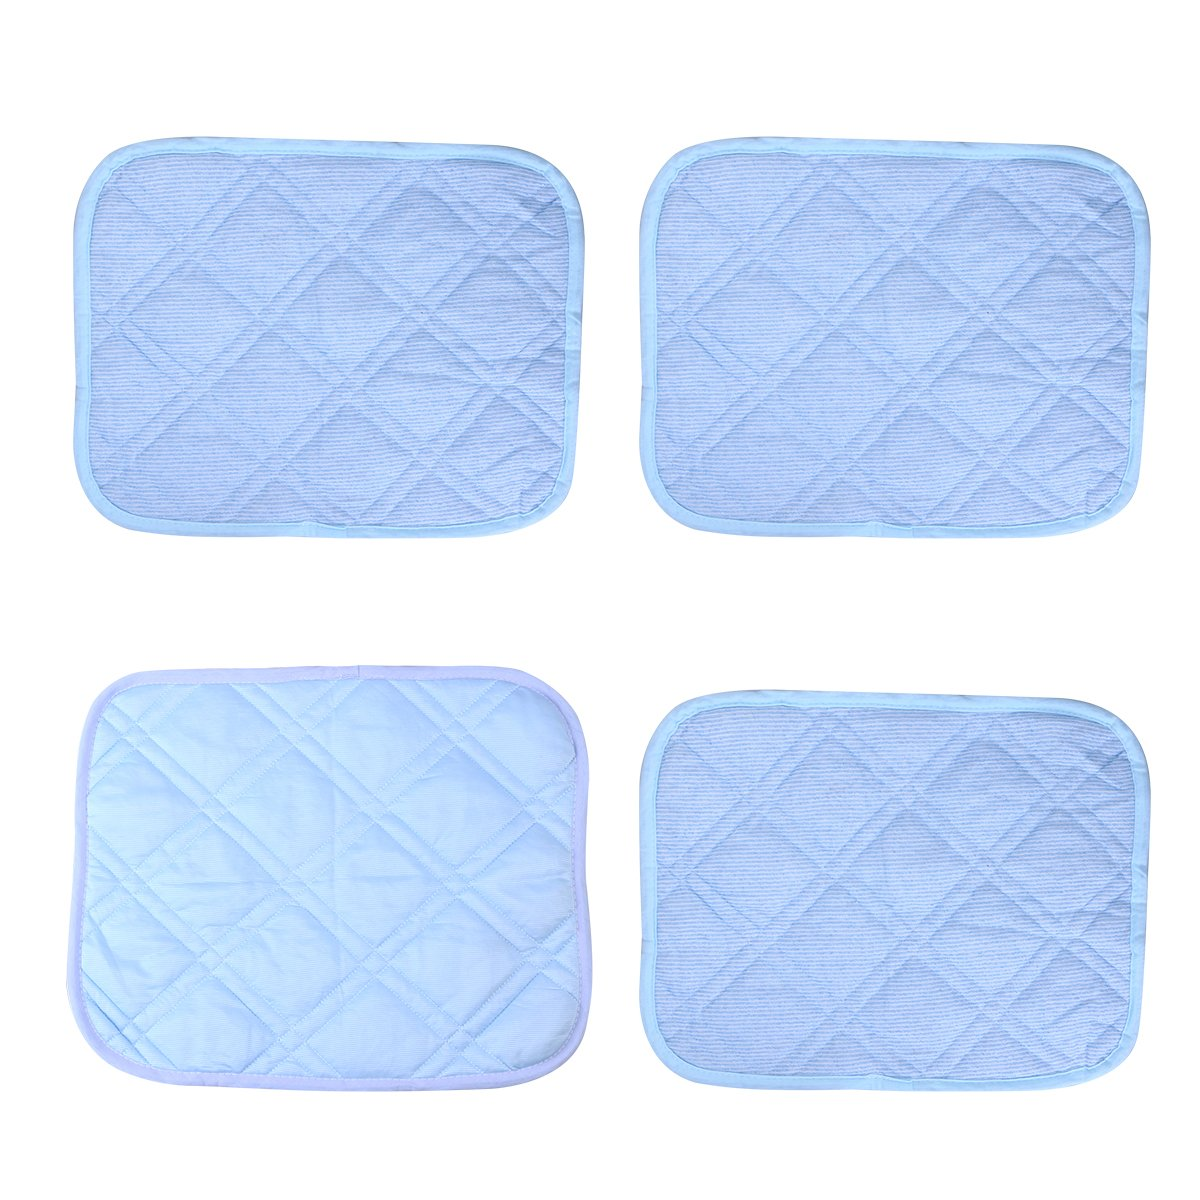 UEETEK 4pcs Pet Cooling Mat Pet Self Comfort Cooling Pads Cool Beds for Dogs and Cats